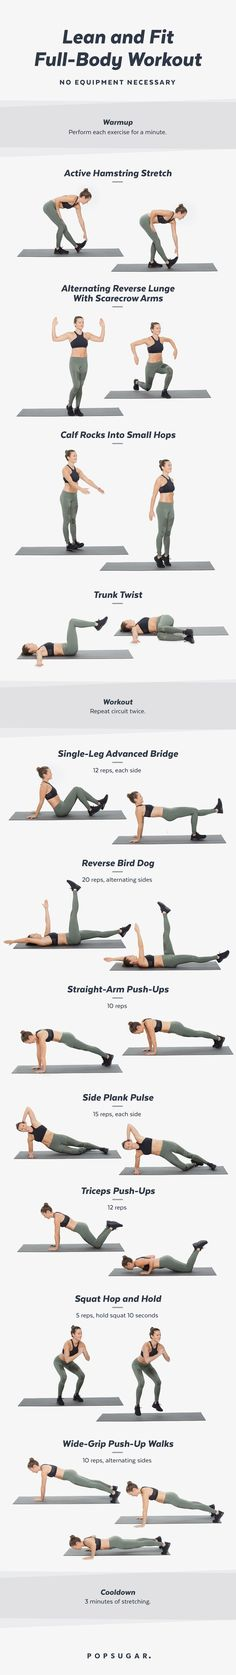 20-Minute Bodyweight Workout | Video | POPSUGAR Fitness